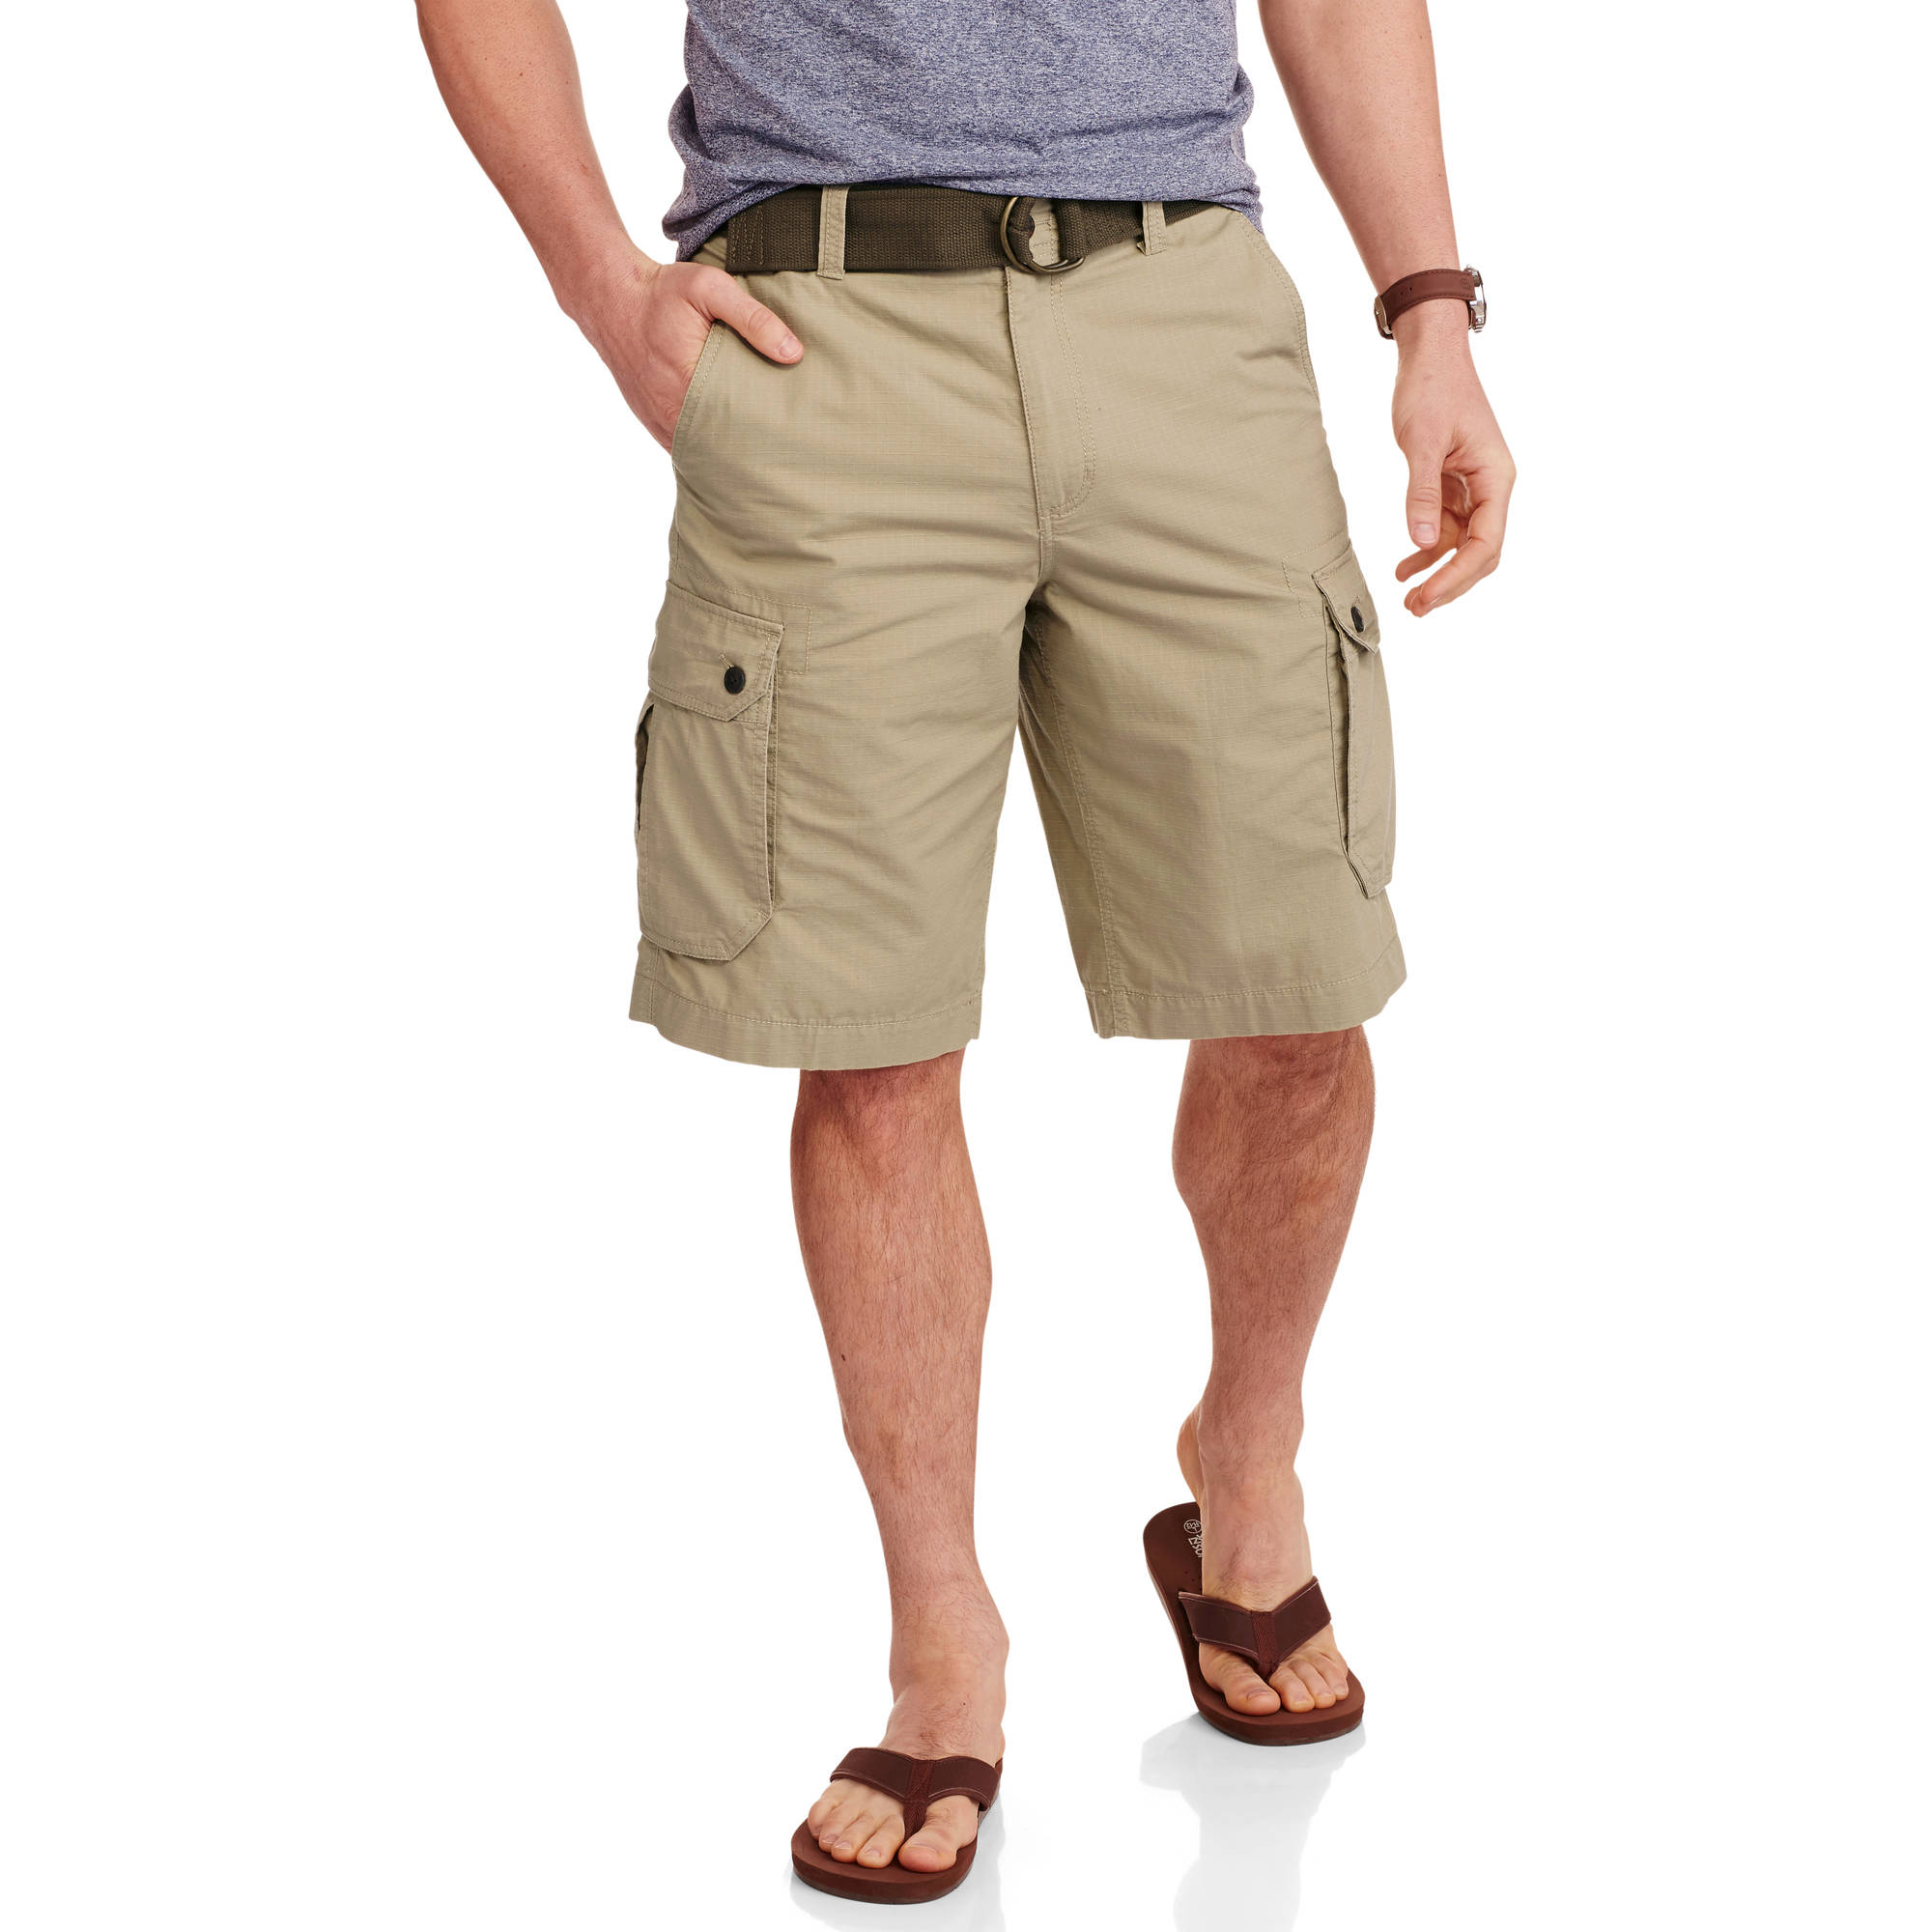 Faded Glory Big Men's Ripstop Cargo Short - Walmart.com